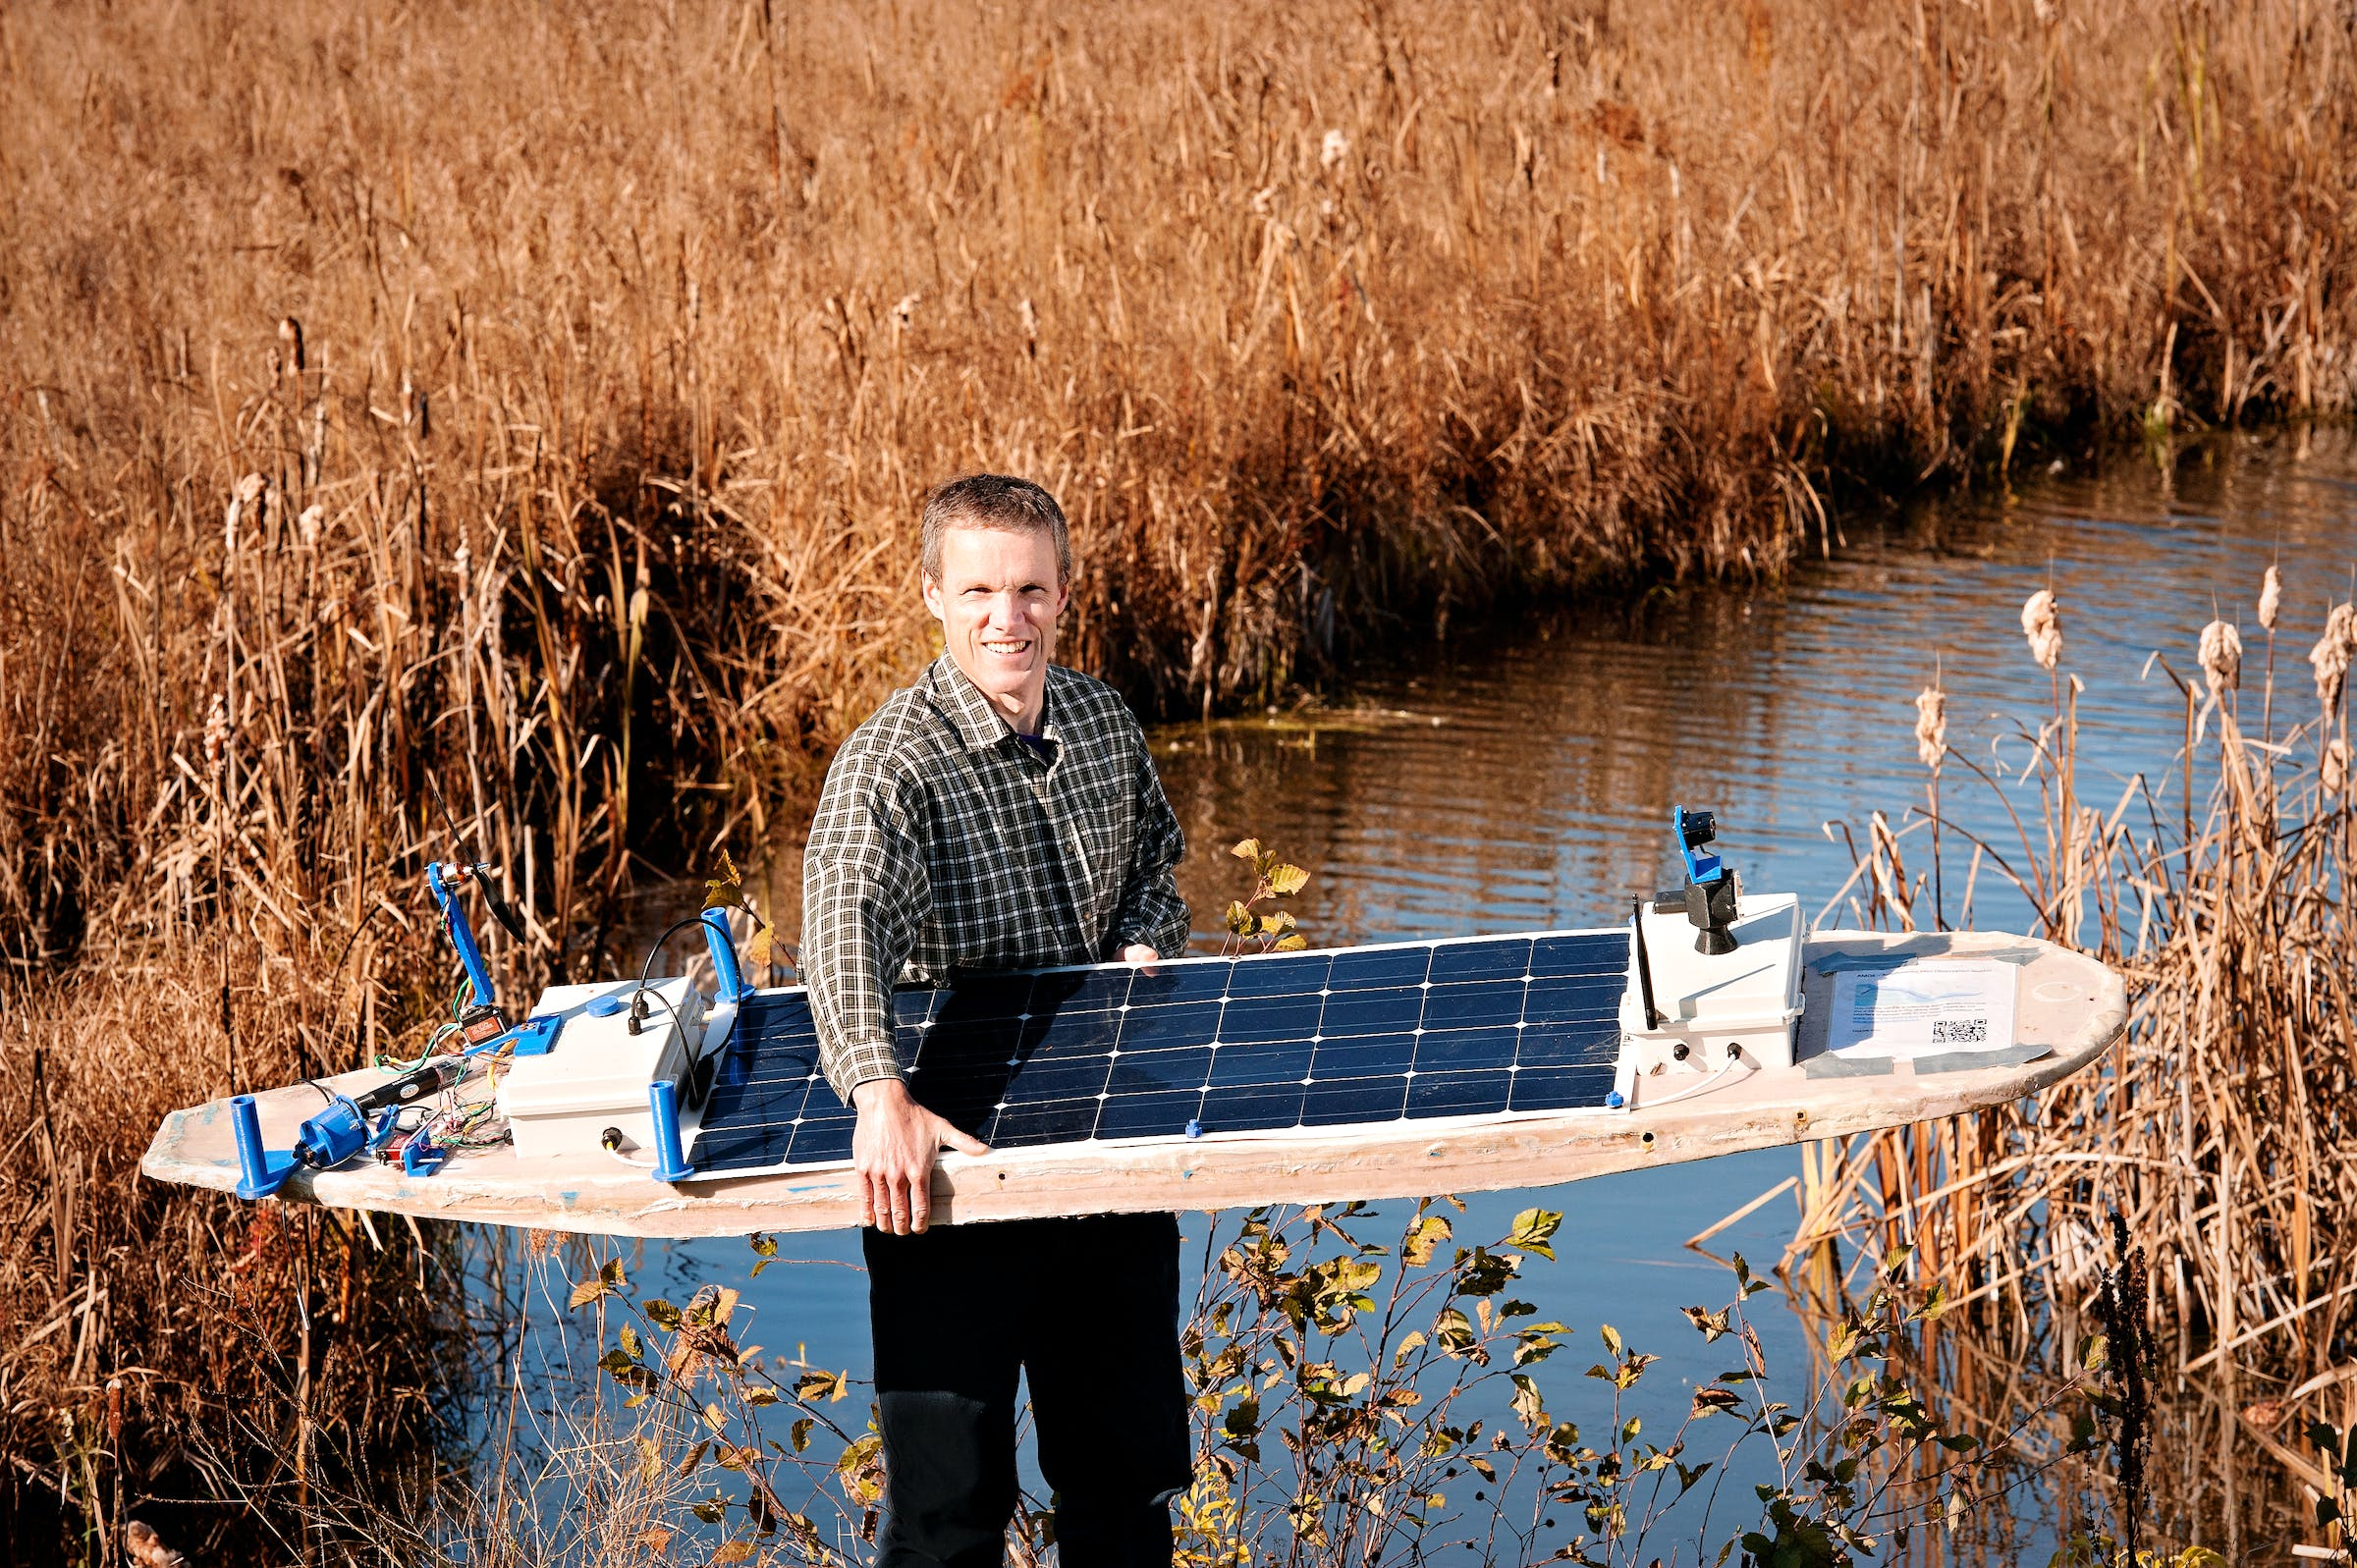 Murray Lowrey-Simpson with the latest version of his boat called AMOS.